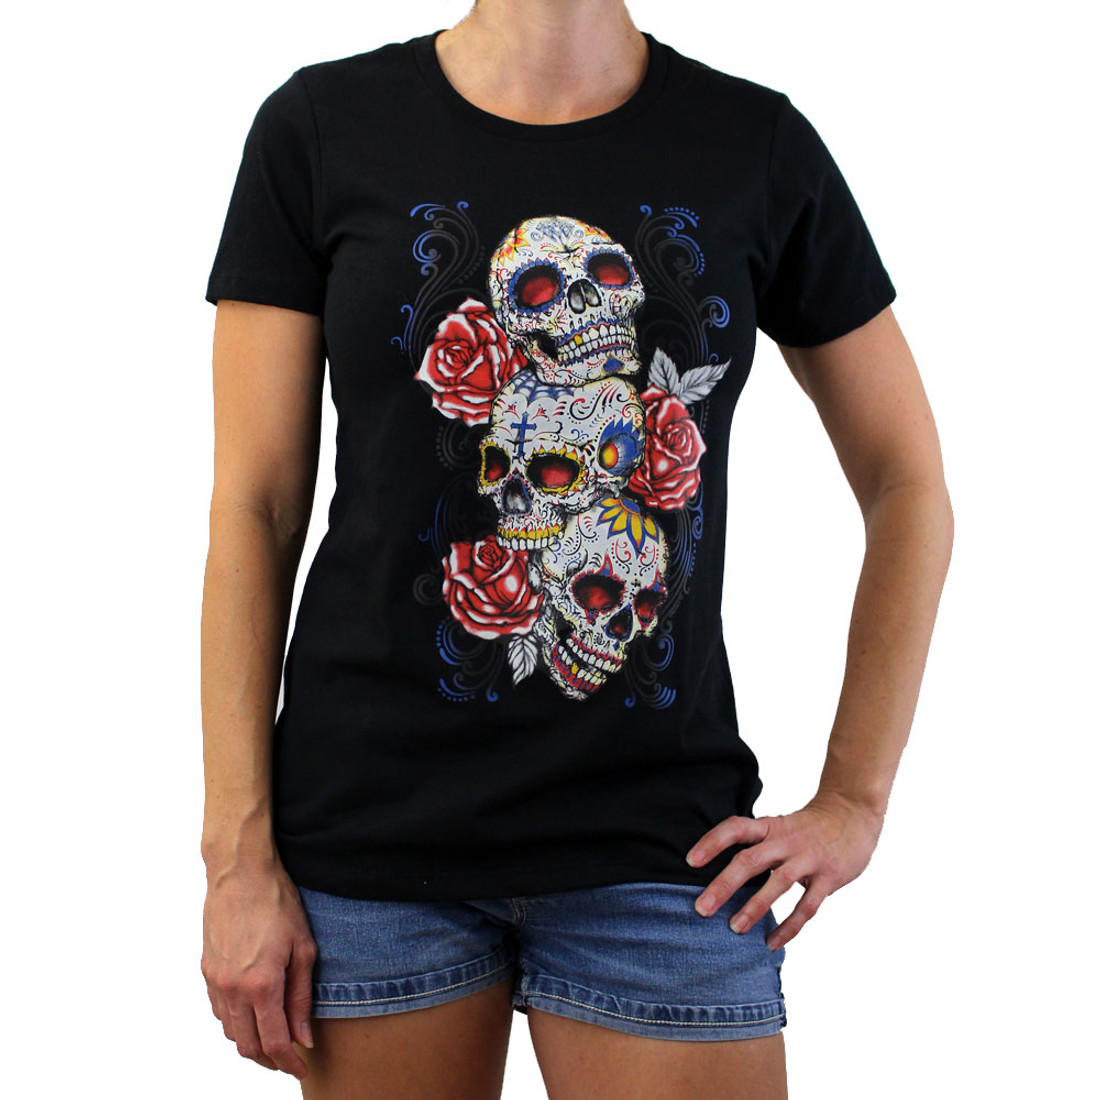 Black tee shirt with 3 Day of the Dead skulls.